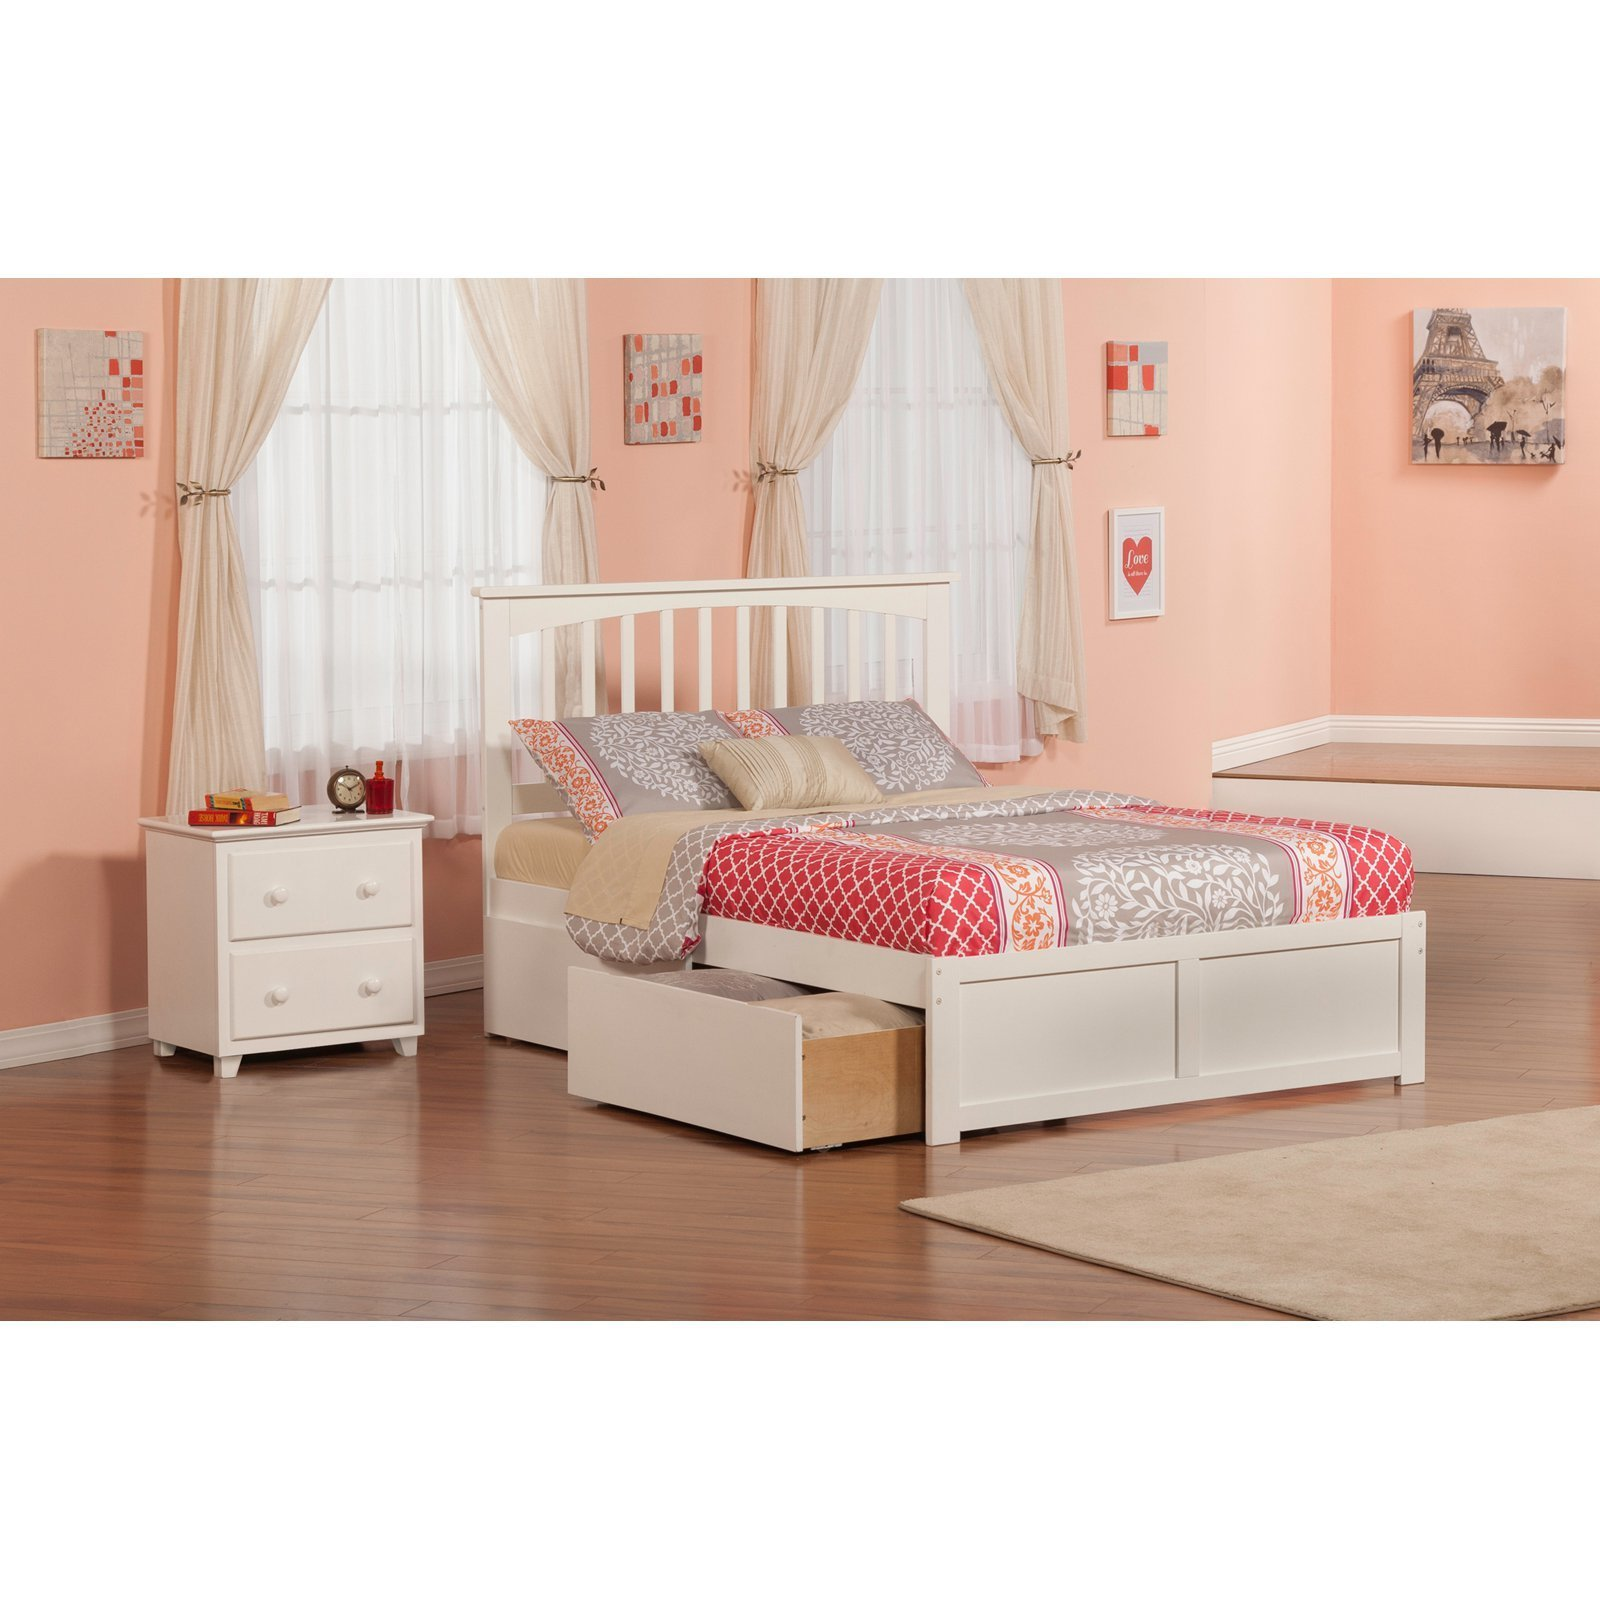 Best Atlantic Furniture Mission Bedroom Set Kids Bedroom Sets With Pictures